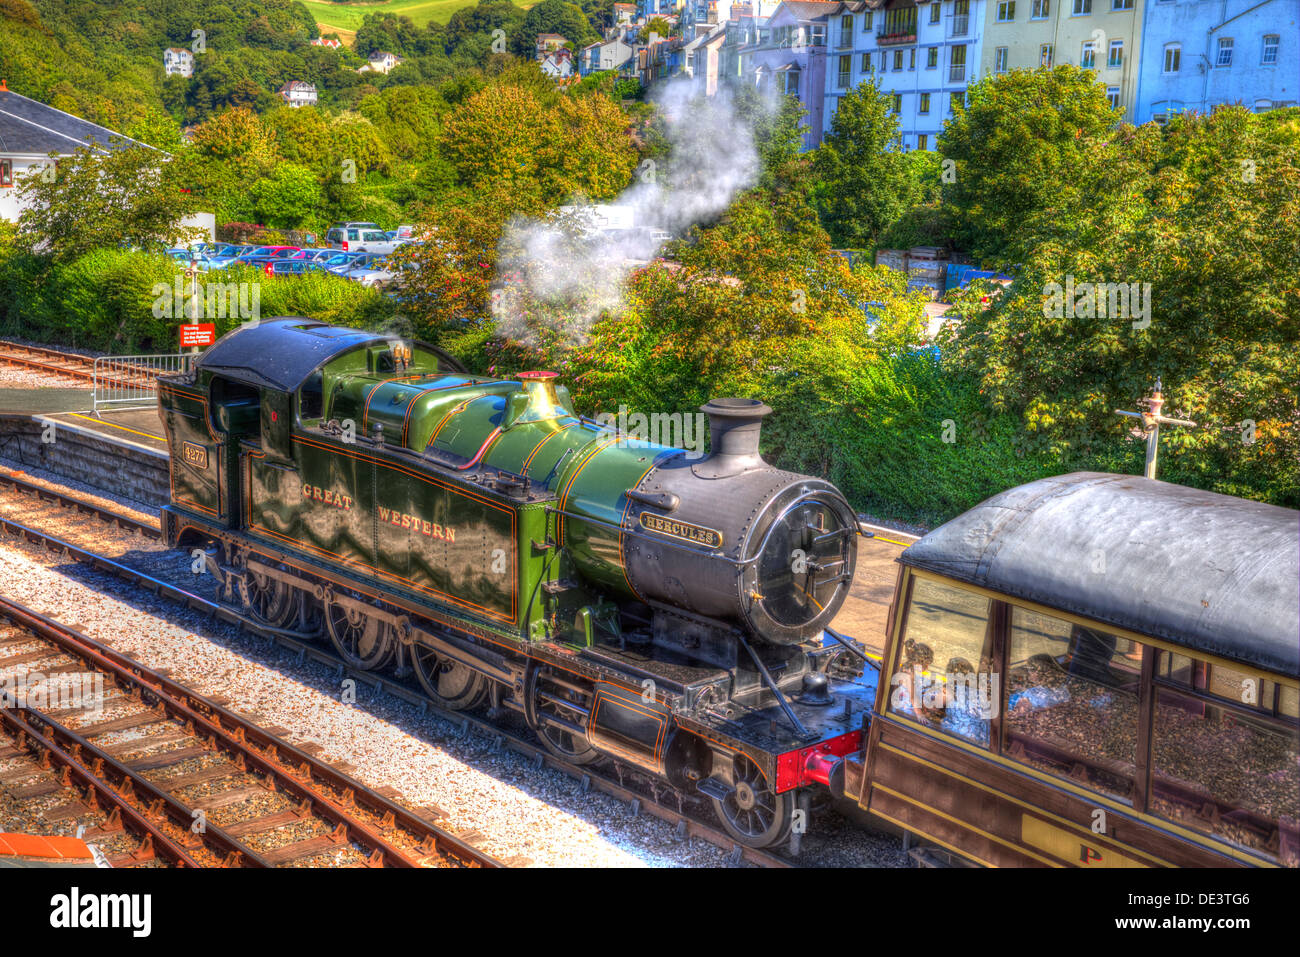 Steam Train letting off steam in the railway station like painting in HDR - Stock Image